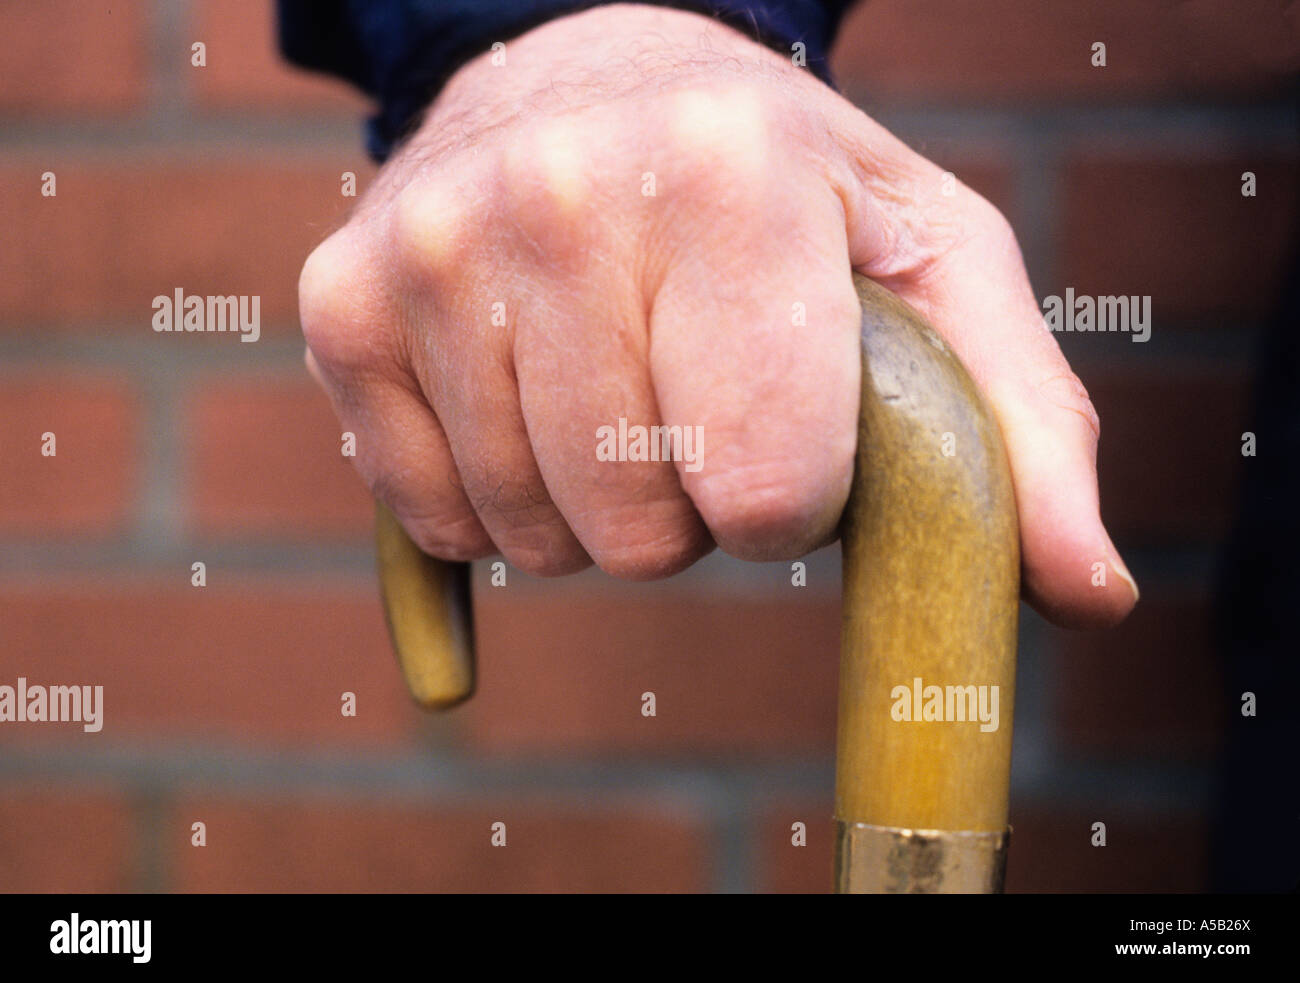 Man Holding a Cane Supporting Himself New York City USA - Stock Image